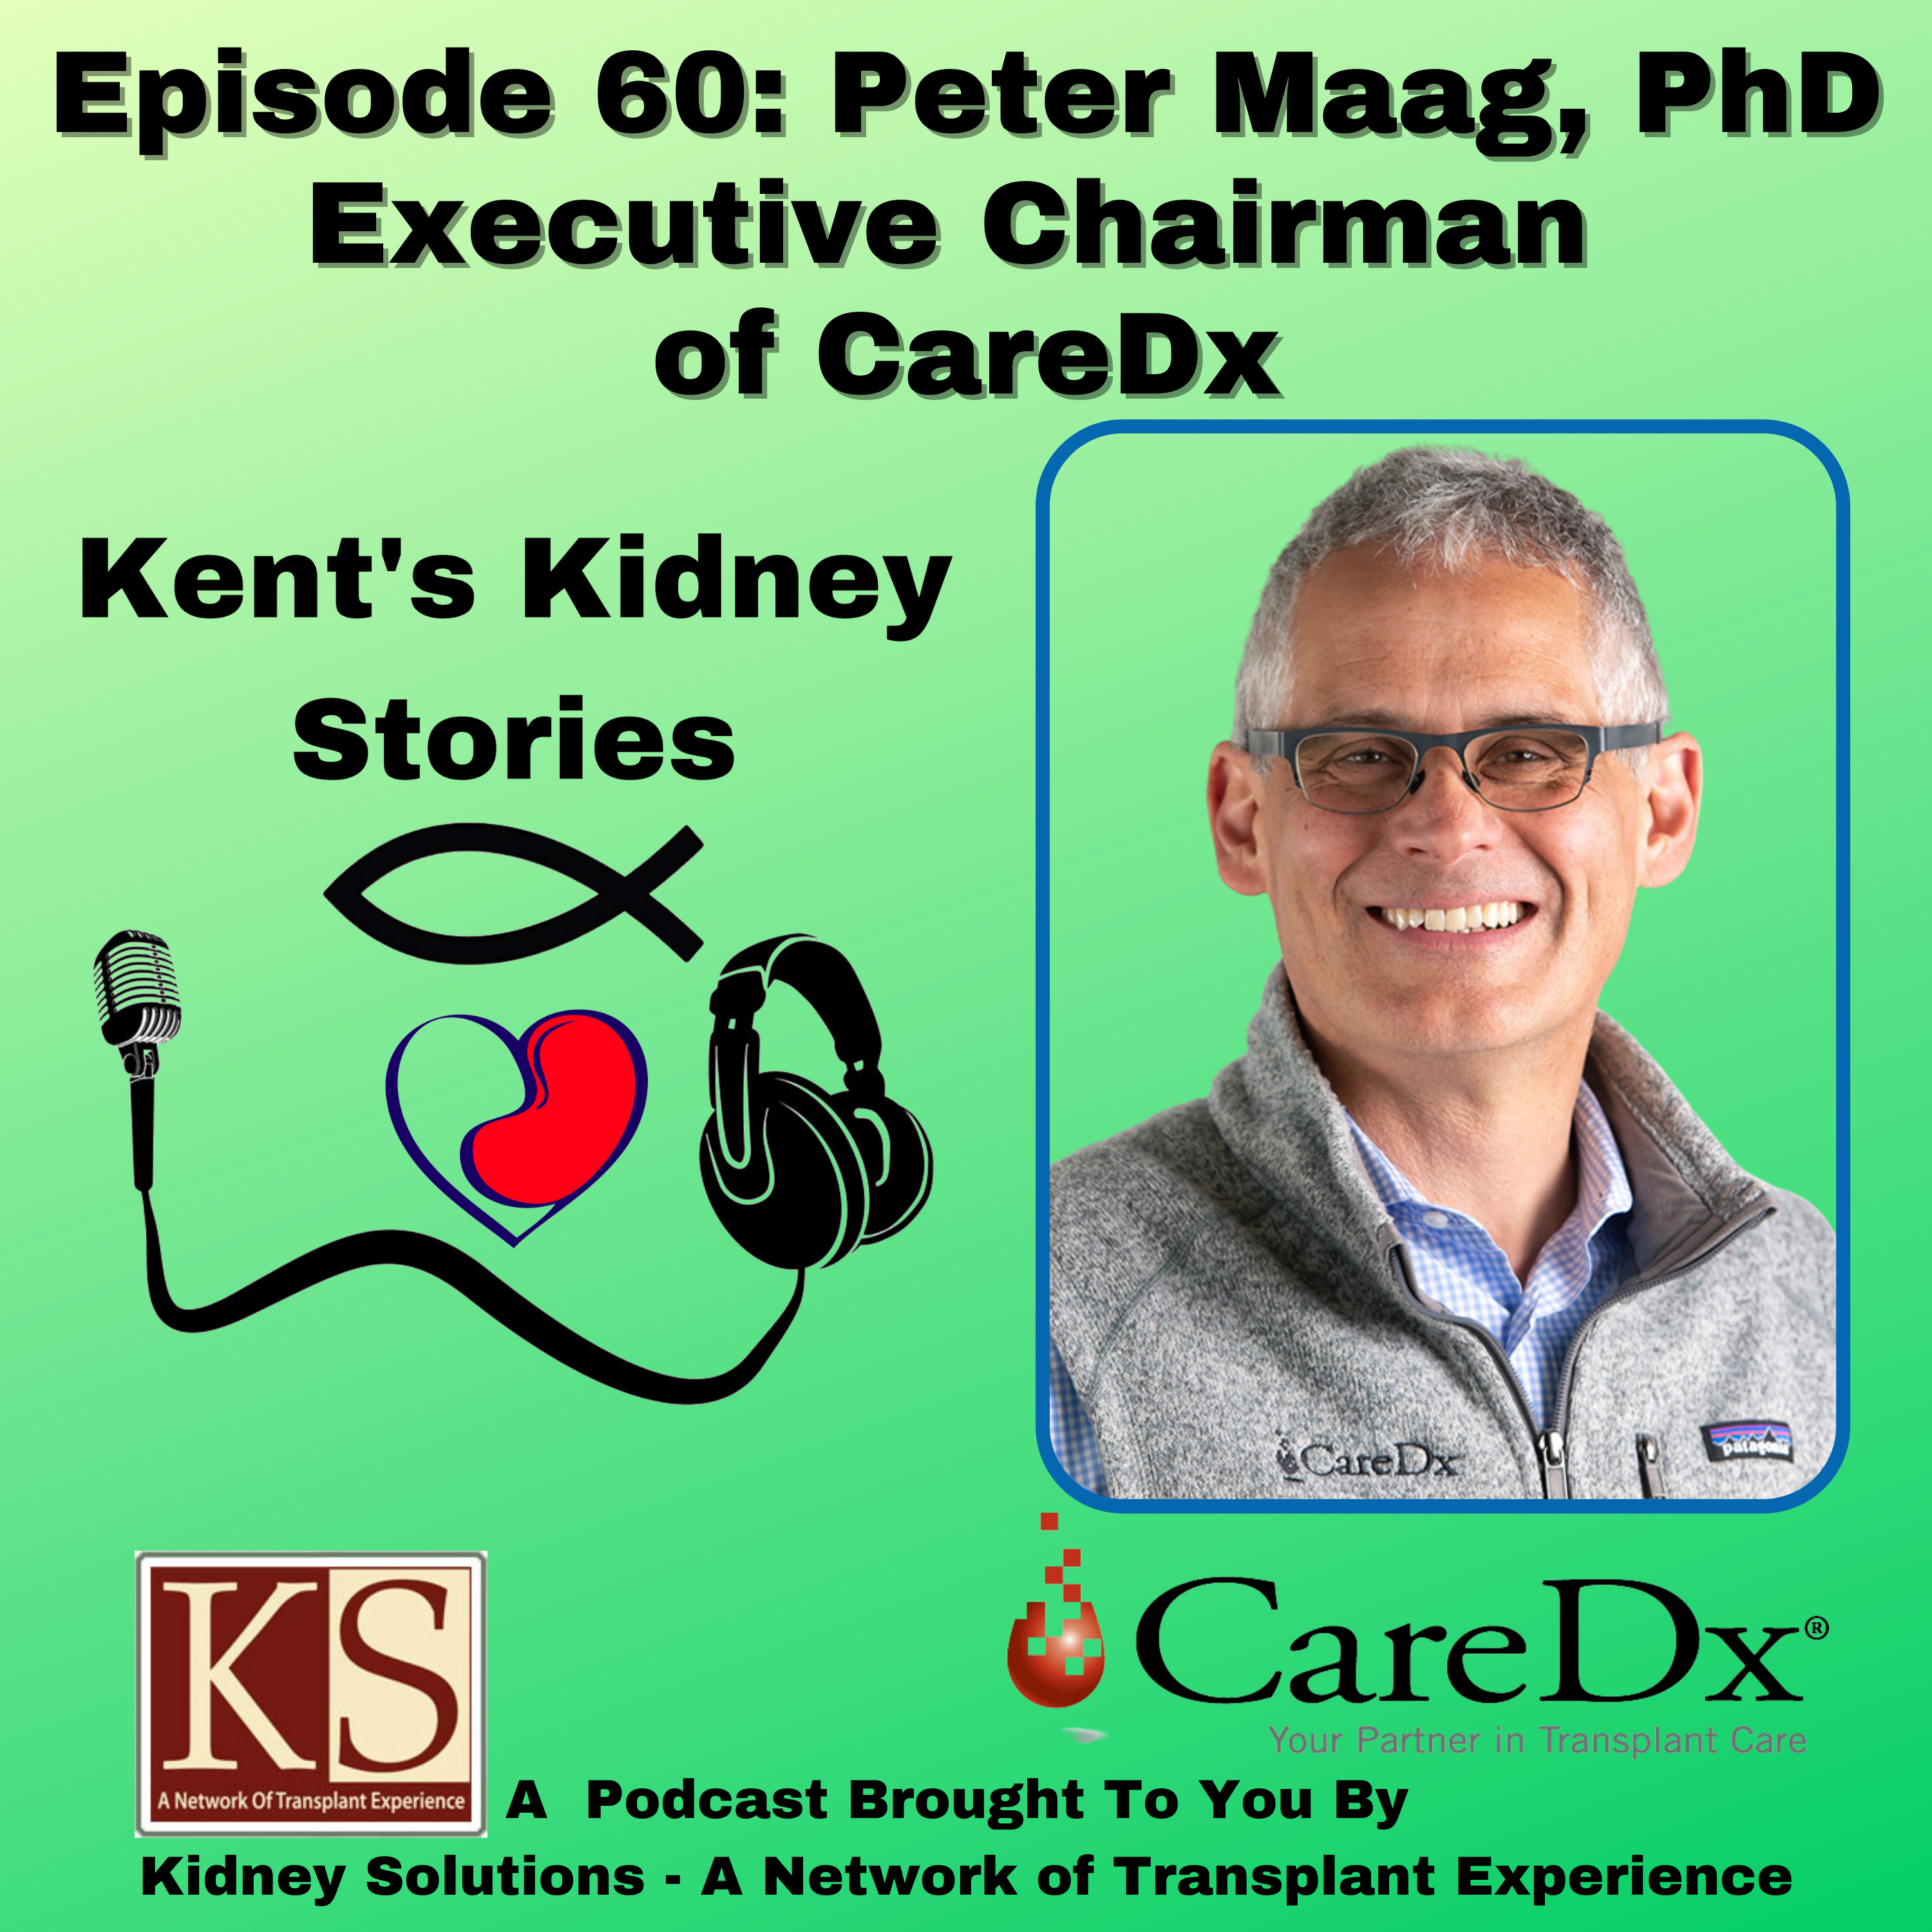 Episode 60: Peter Maag, PhD Executive Chairman of CareDx